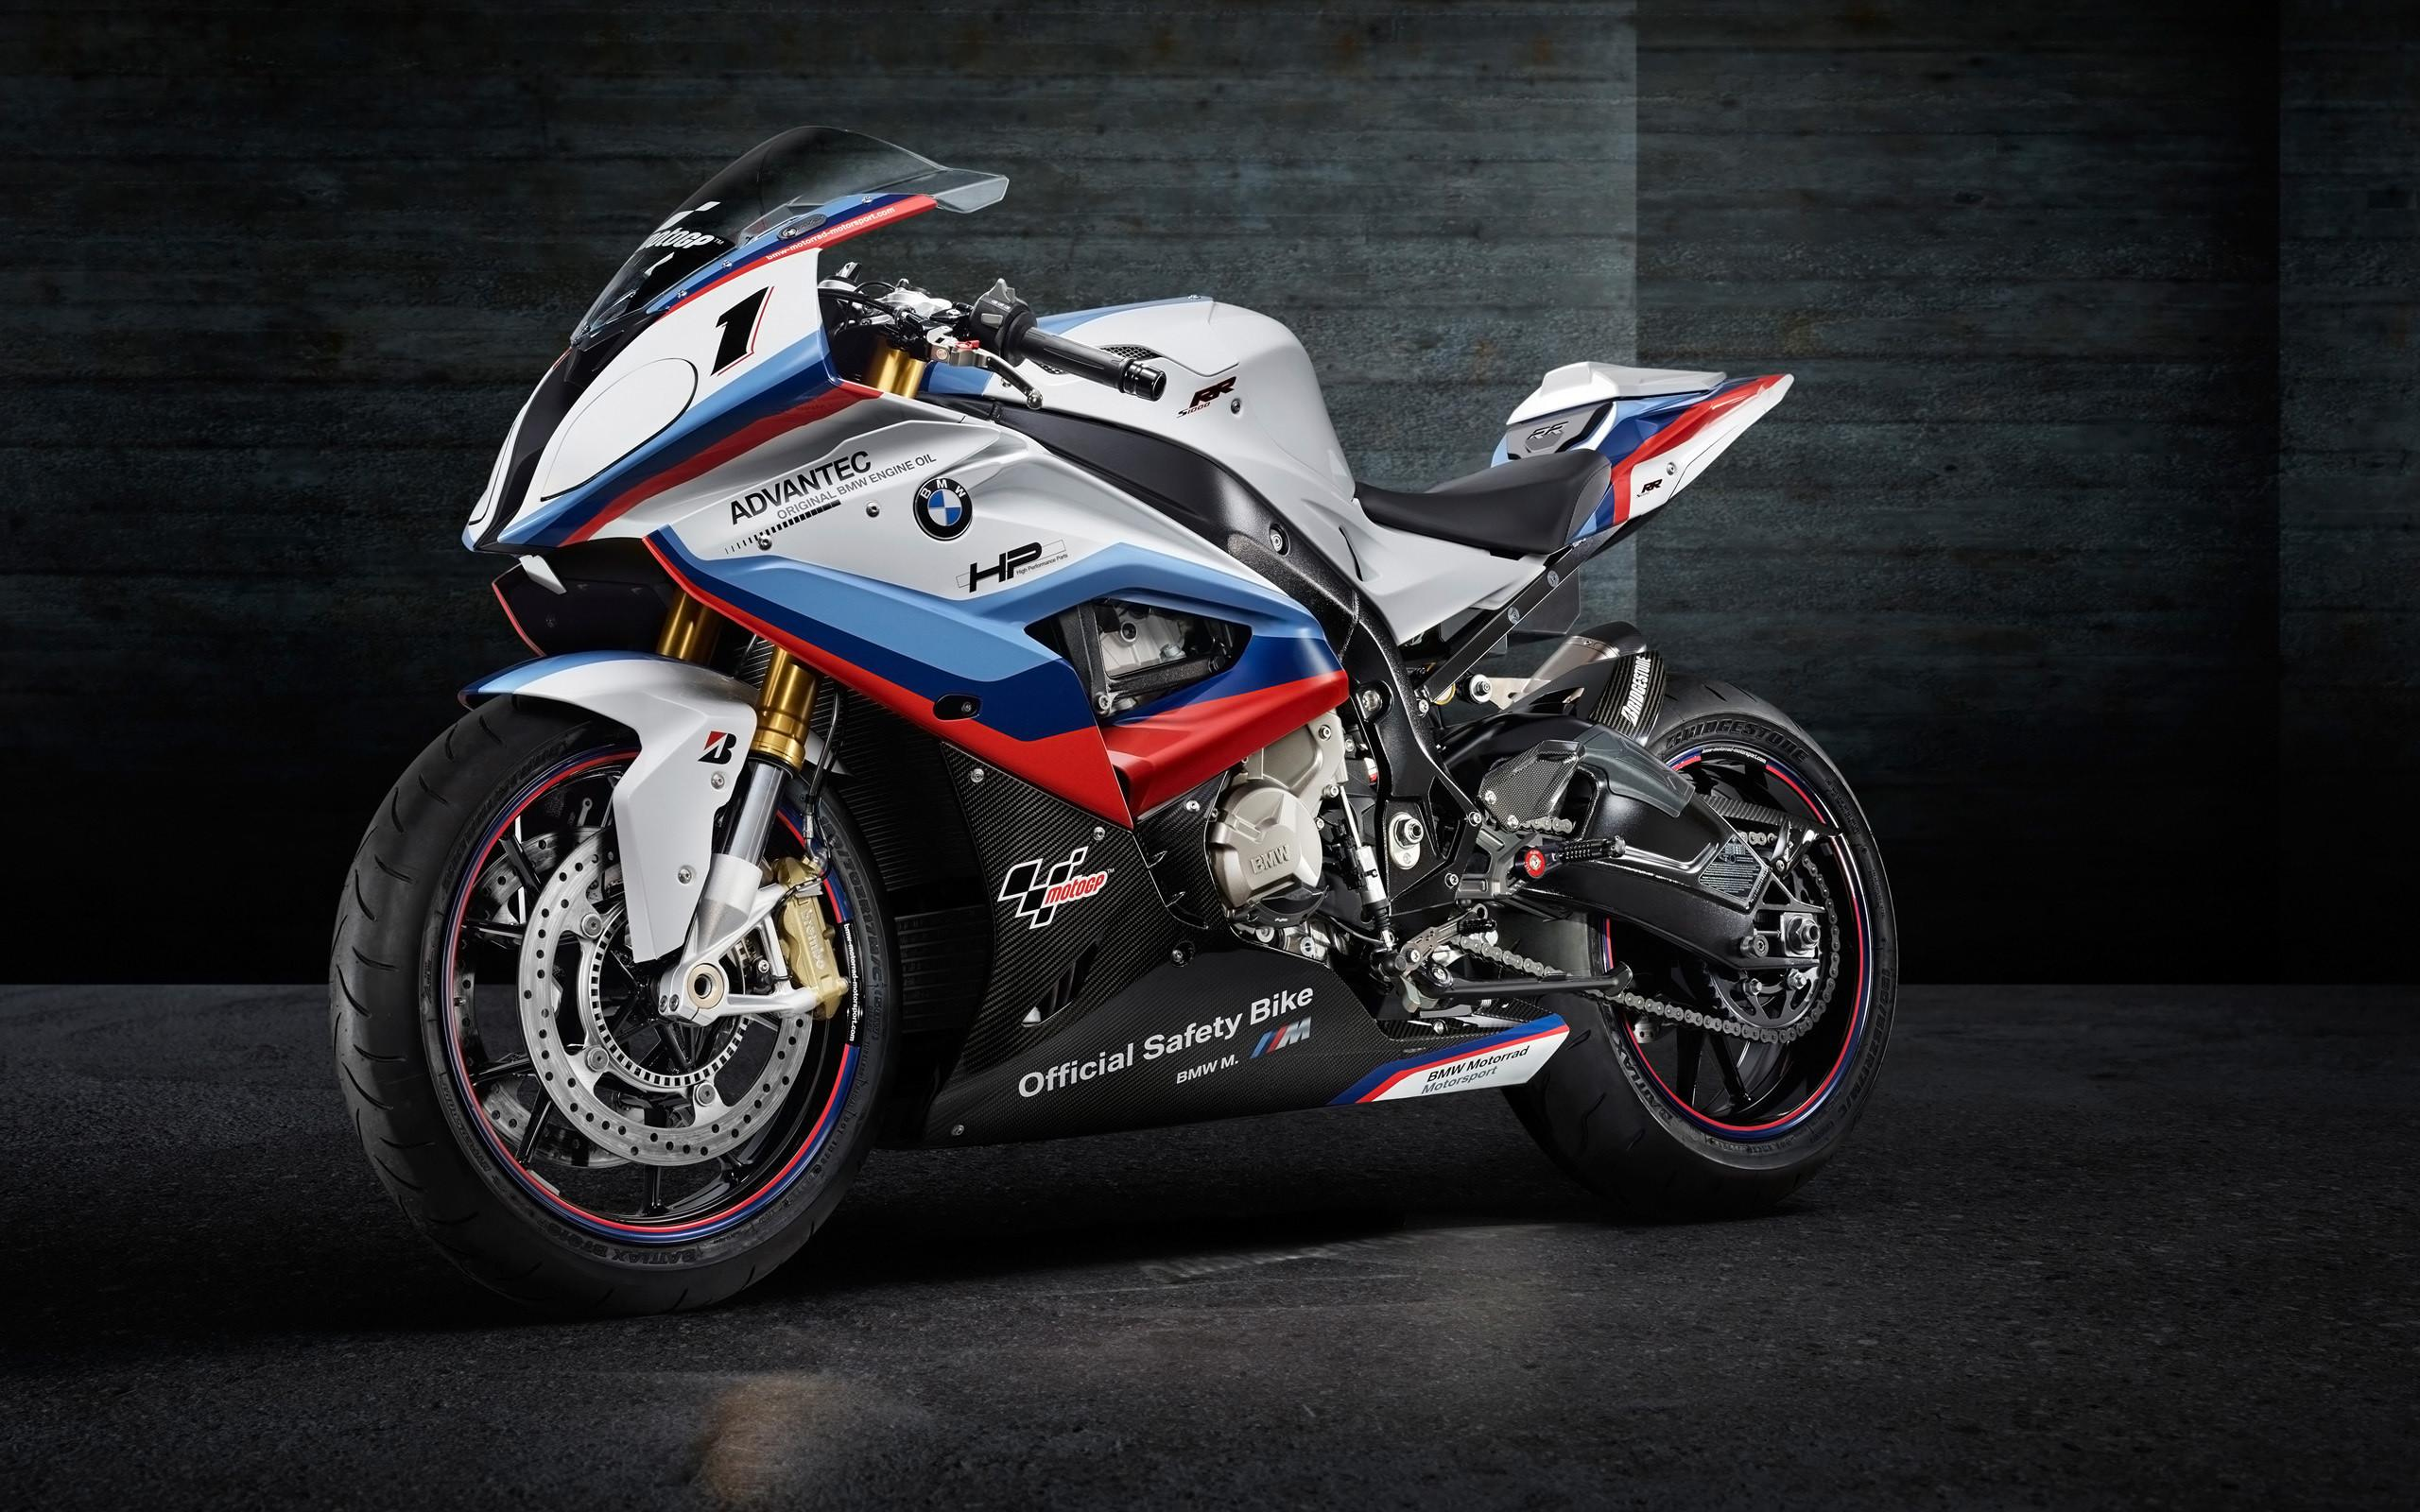 Bmw S1000rr 2019 Wallpapers Wallpaper Cave